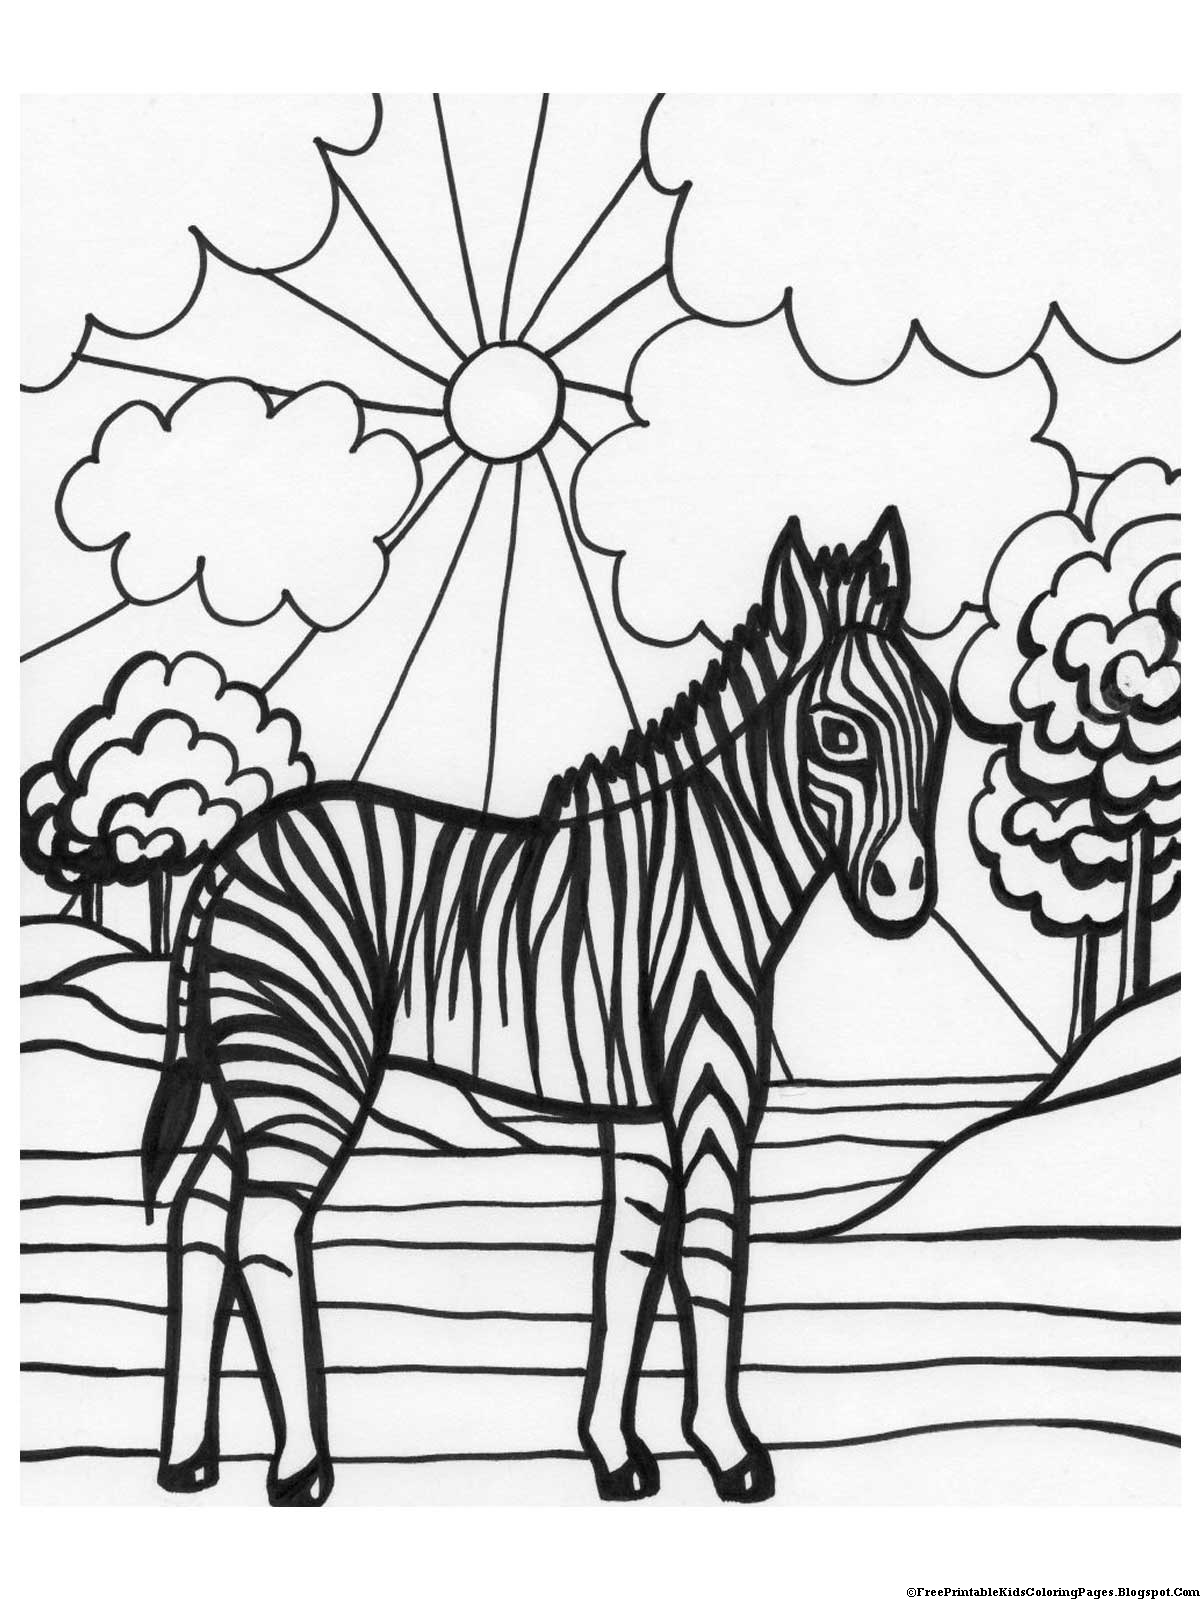 coloring pages for kids online coloring pages winnie the pooh kids online world blog for pages online kids coloring